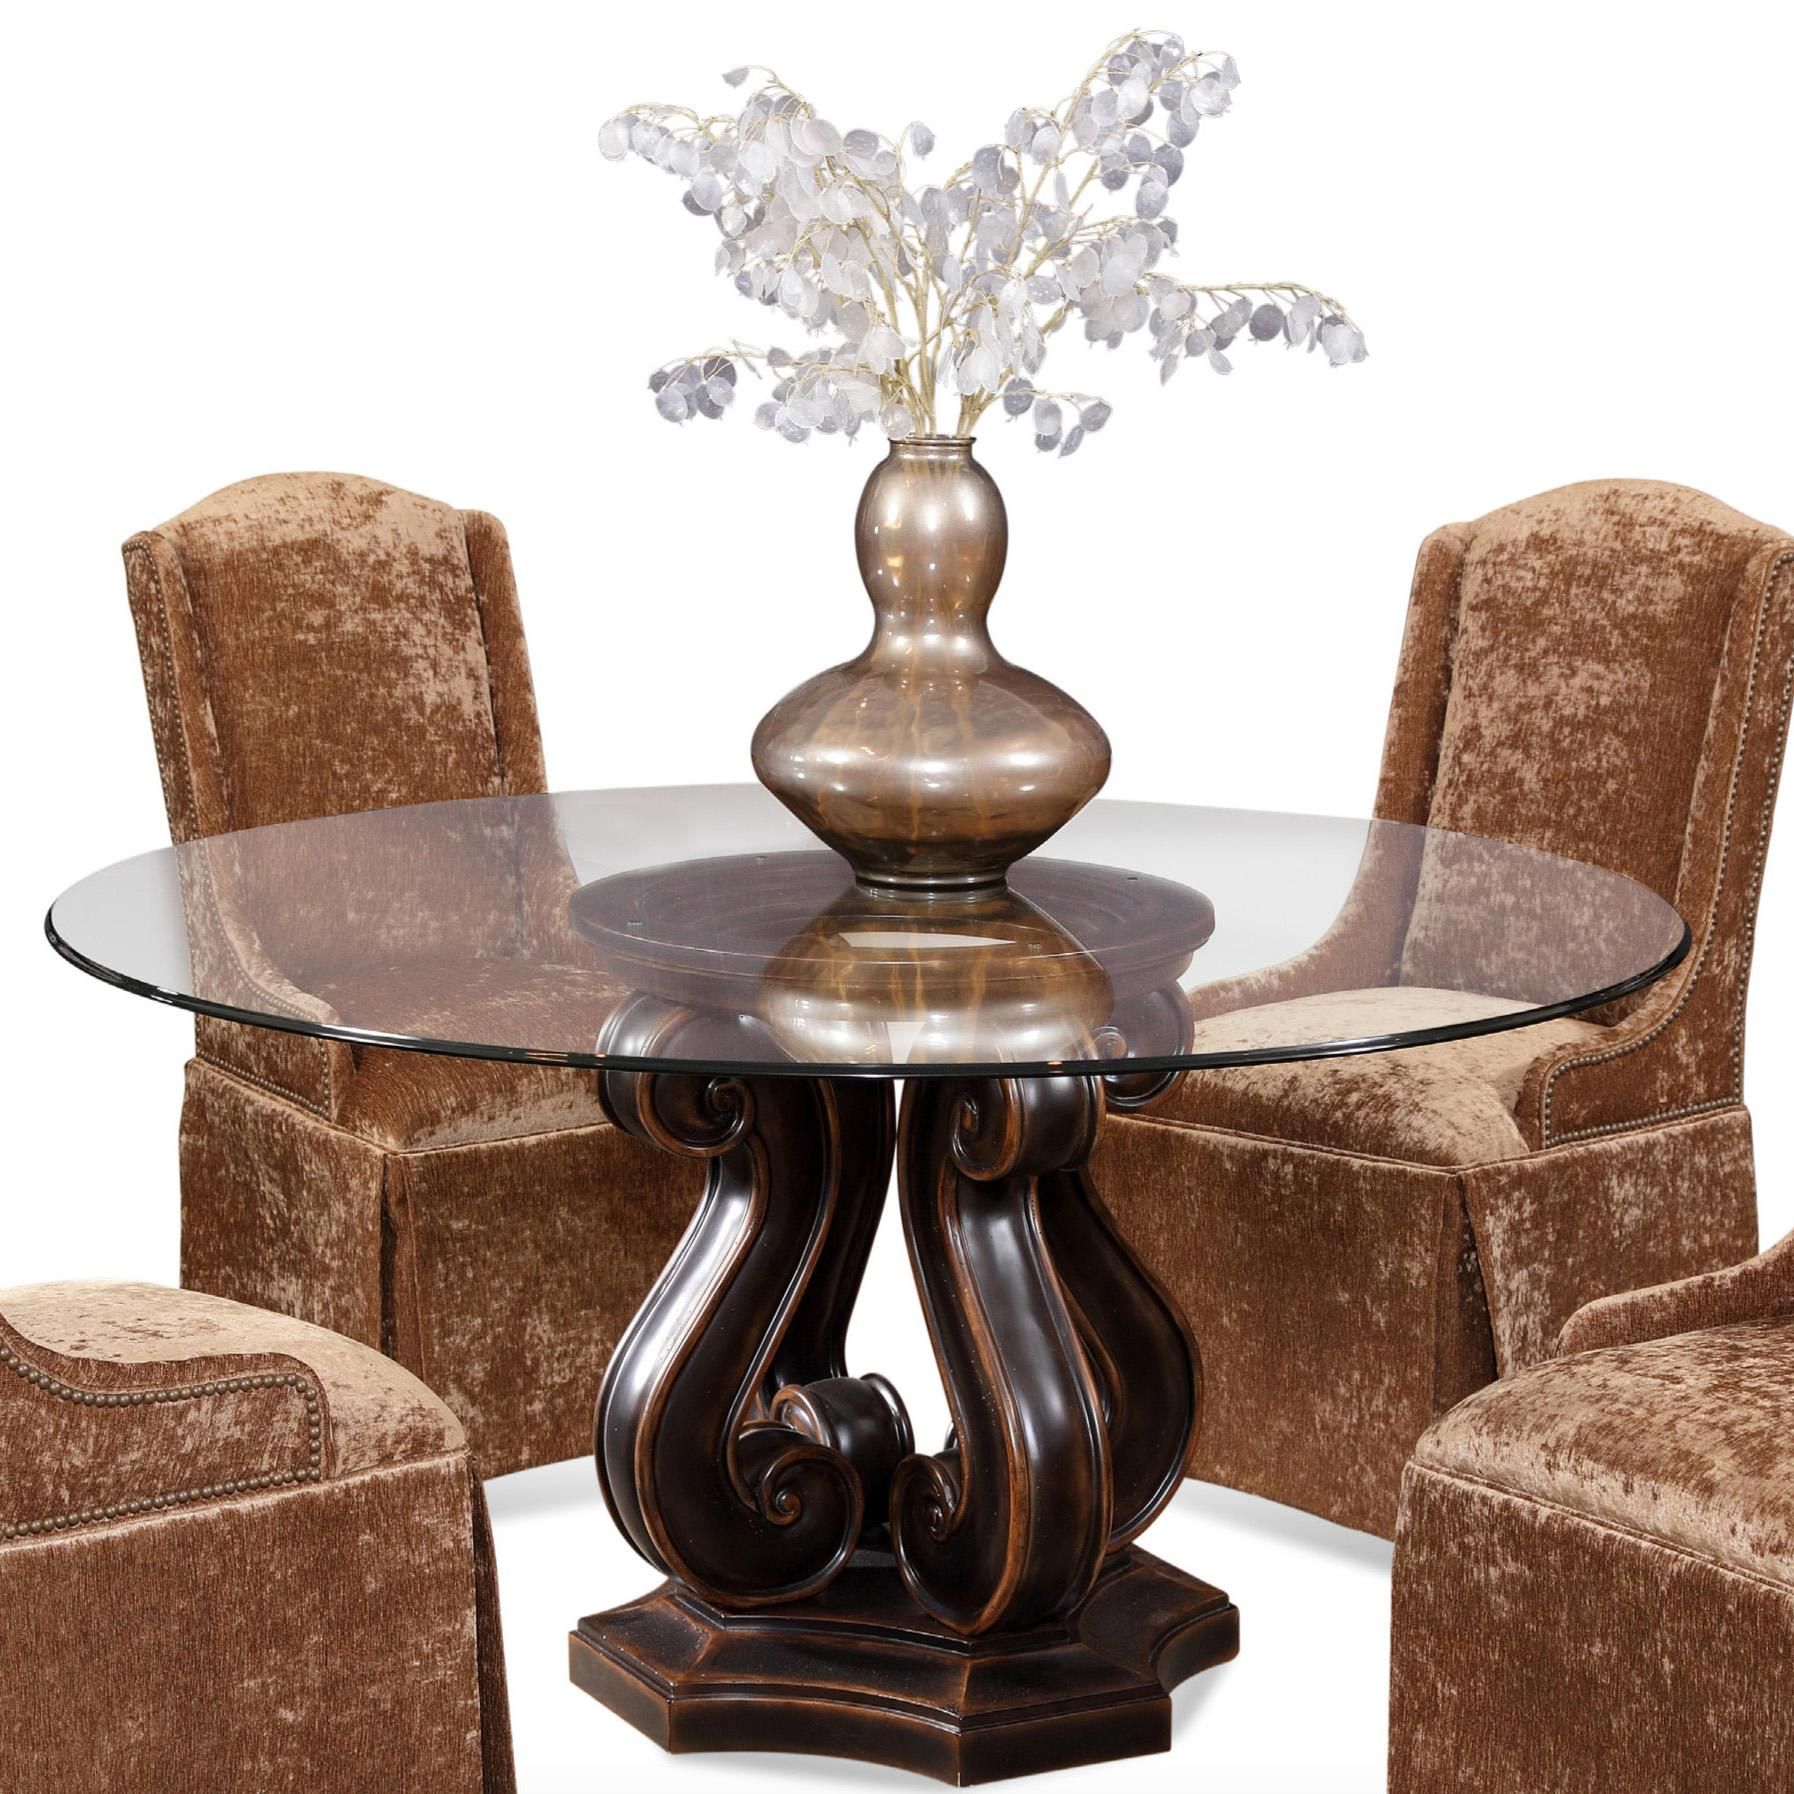 Tudor Pedestal Base Table With Round Glass Top